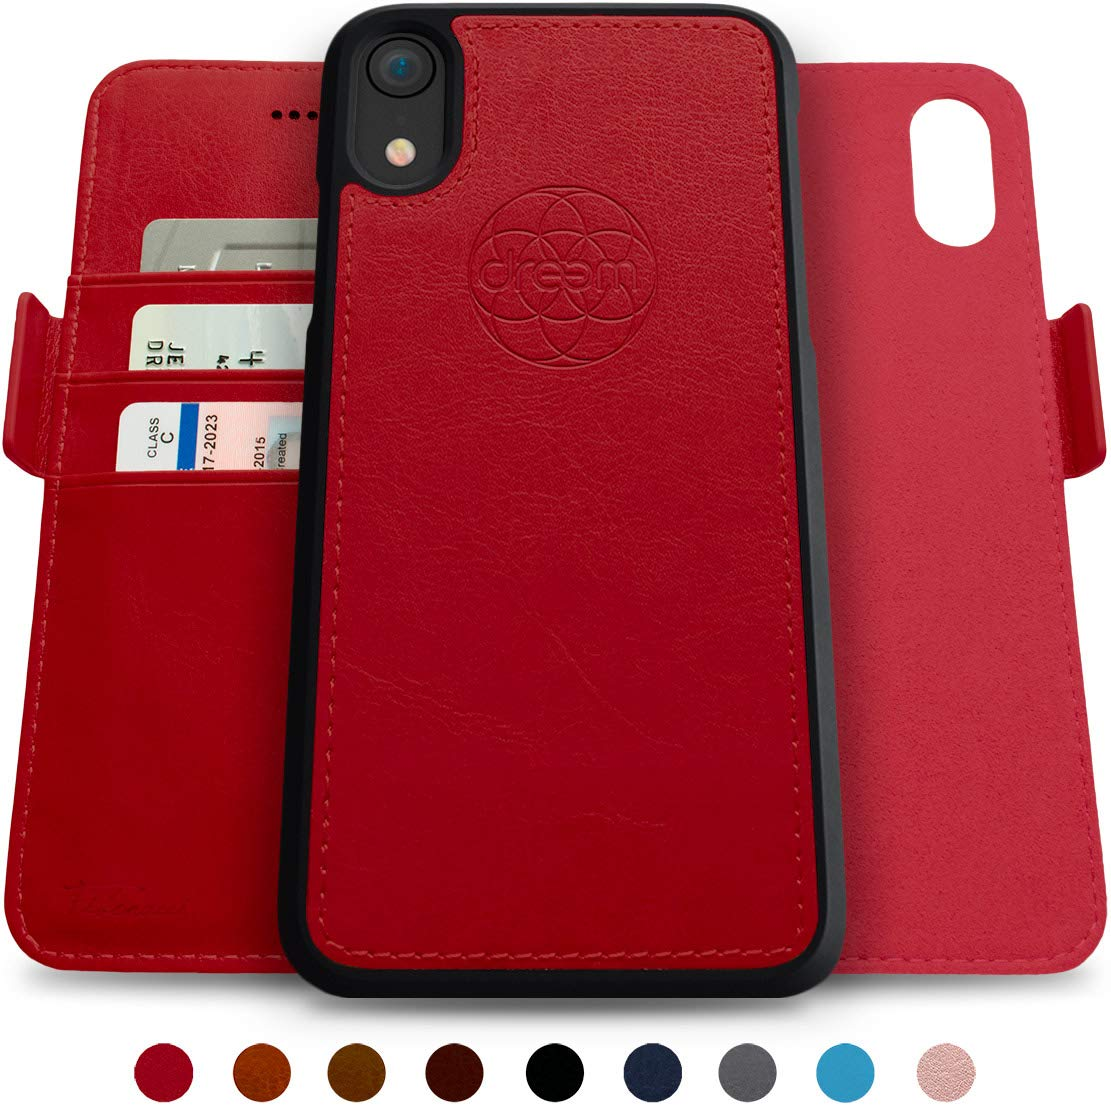 Dreem Fibonacci 2-in-1 Wallet-Case for iPhone XR Magnetic Detachable Unbreakable TPU Slim-Case, Wireless Charge, RFID Protection, 2-Way Stand, Luxury Vegan Leather, Gift-Box - Red